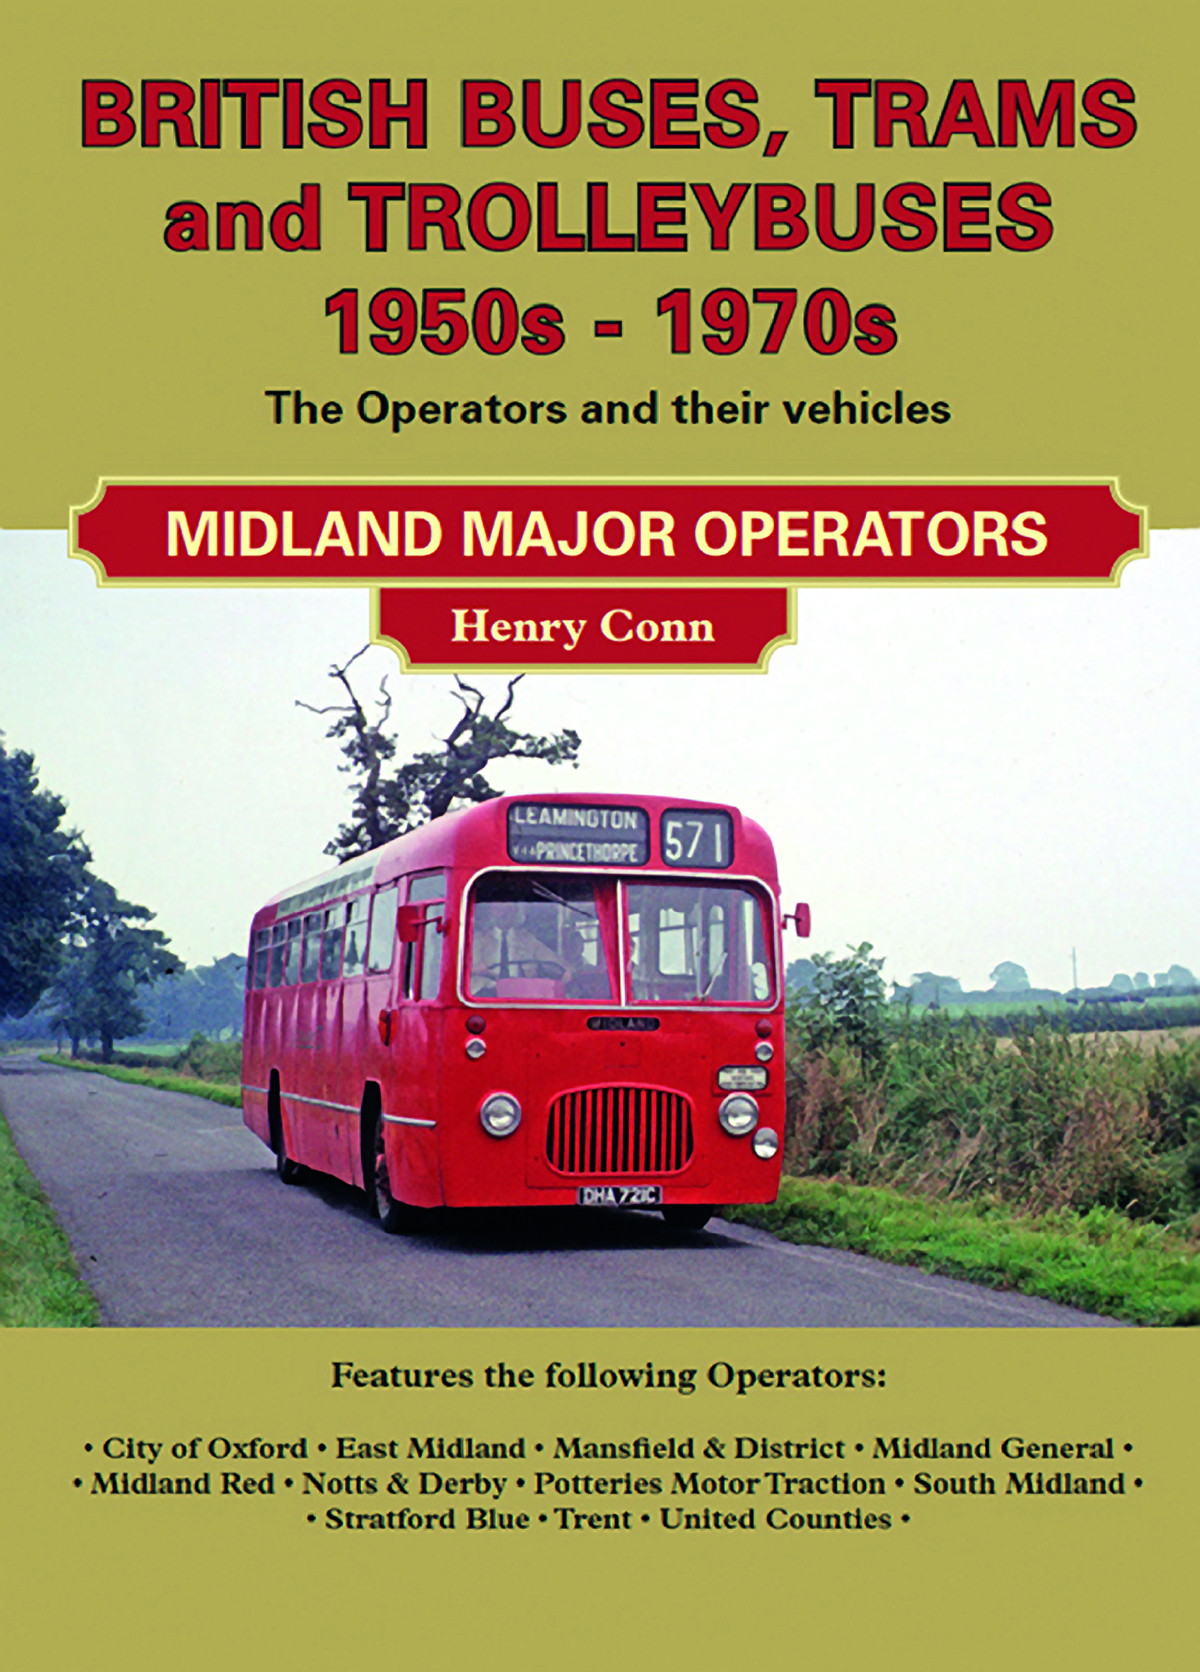 4266 - Buses & Trolleybuses Part 11: Midland Major Operators